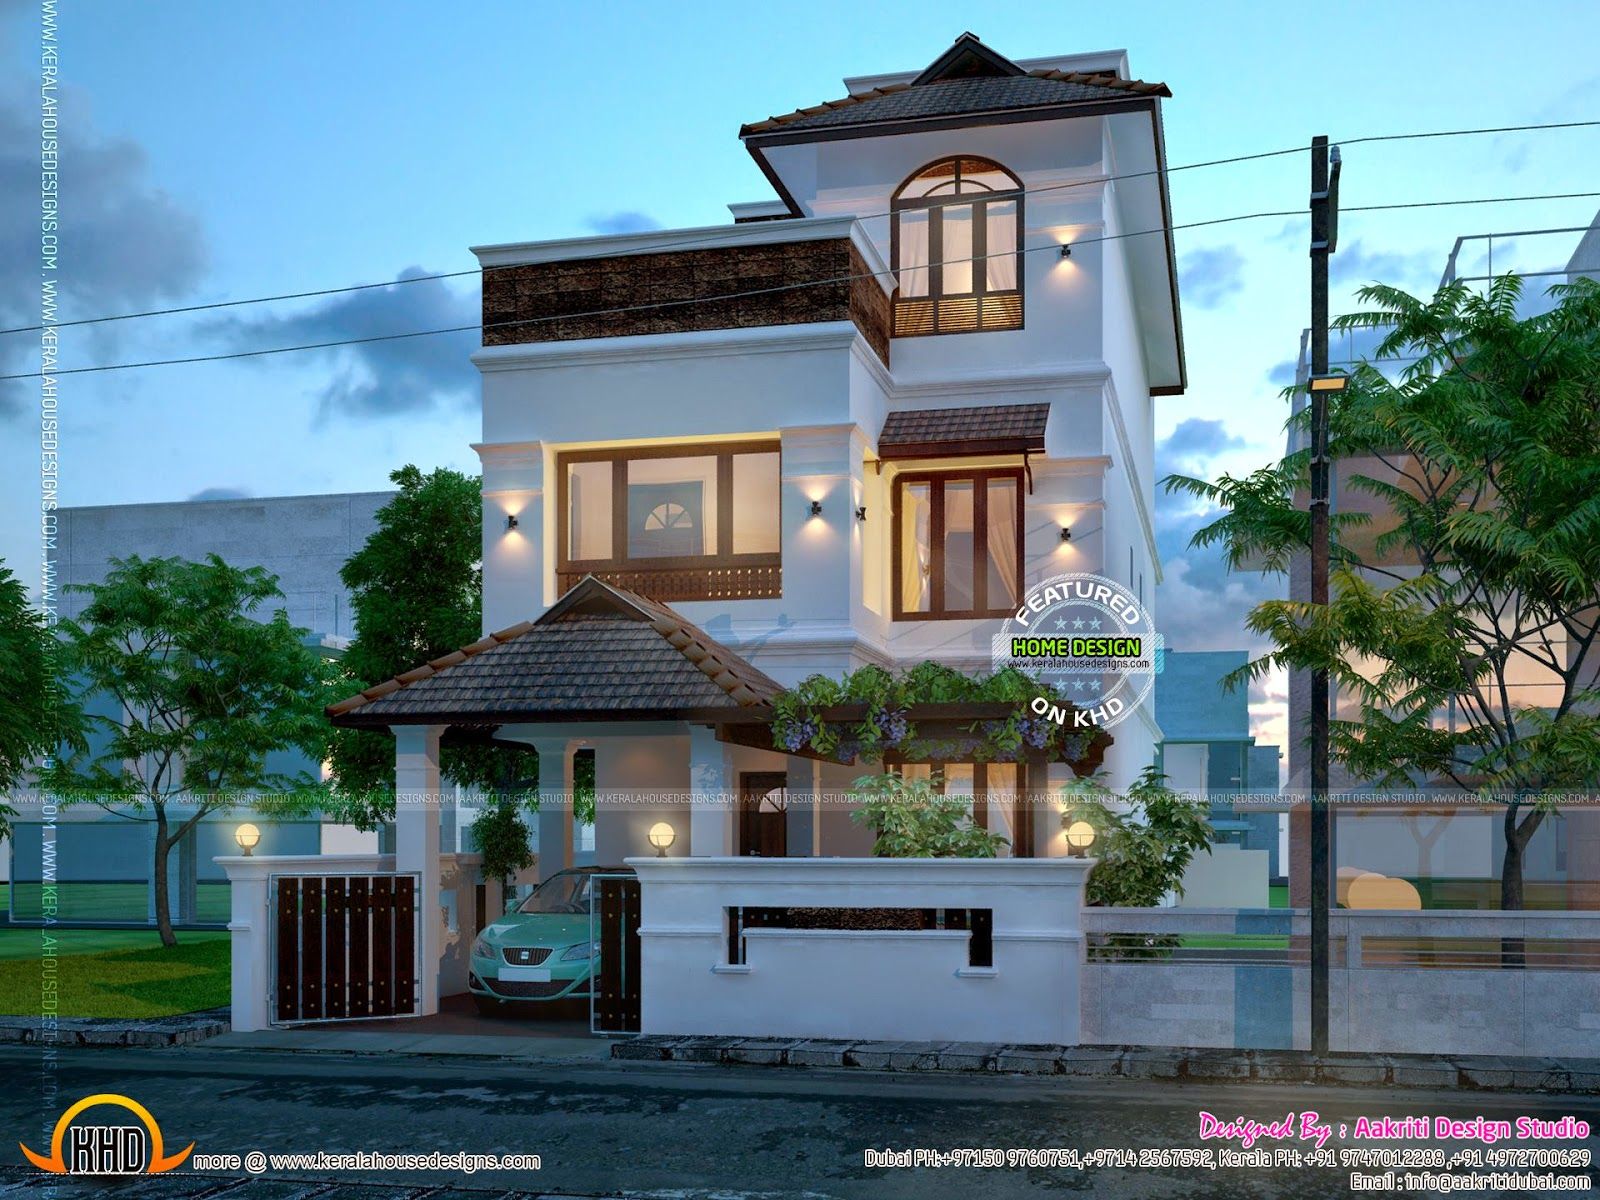 New house design kerala home design and floor plans for Latest house design images